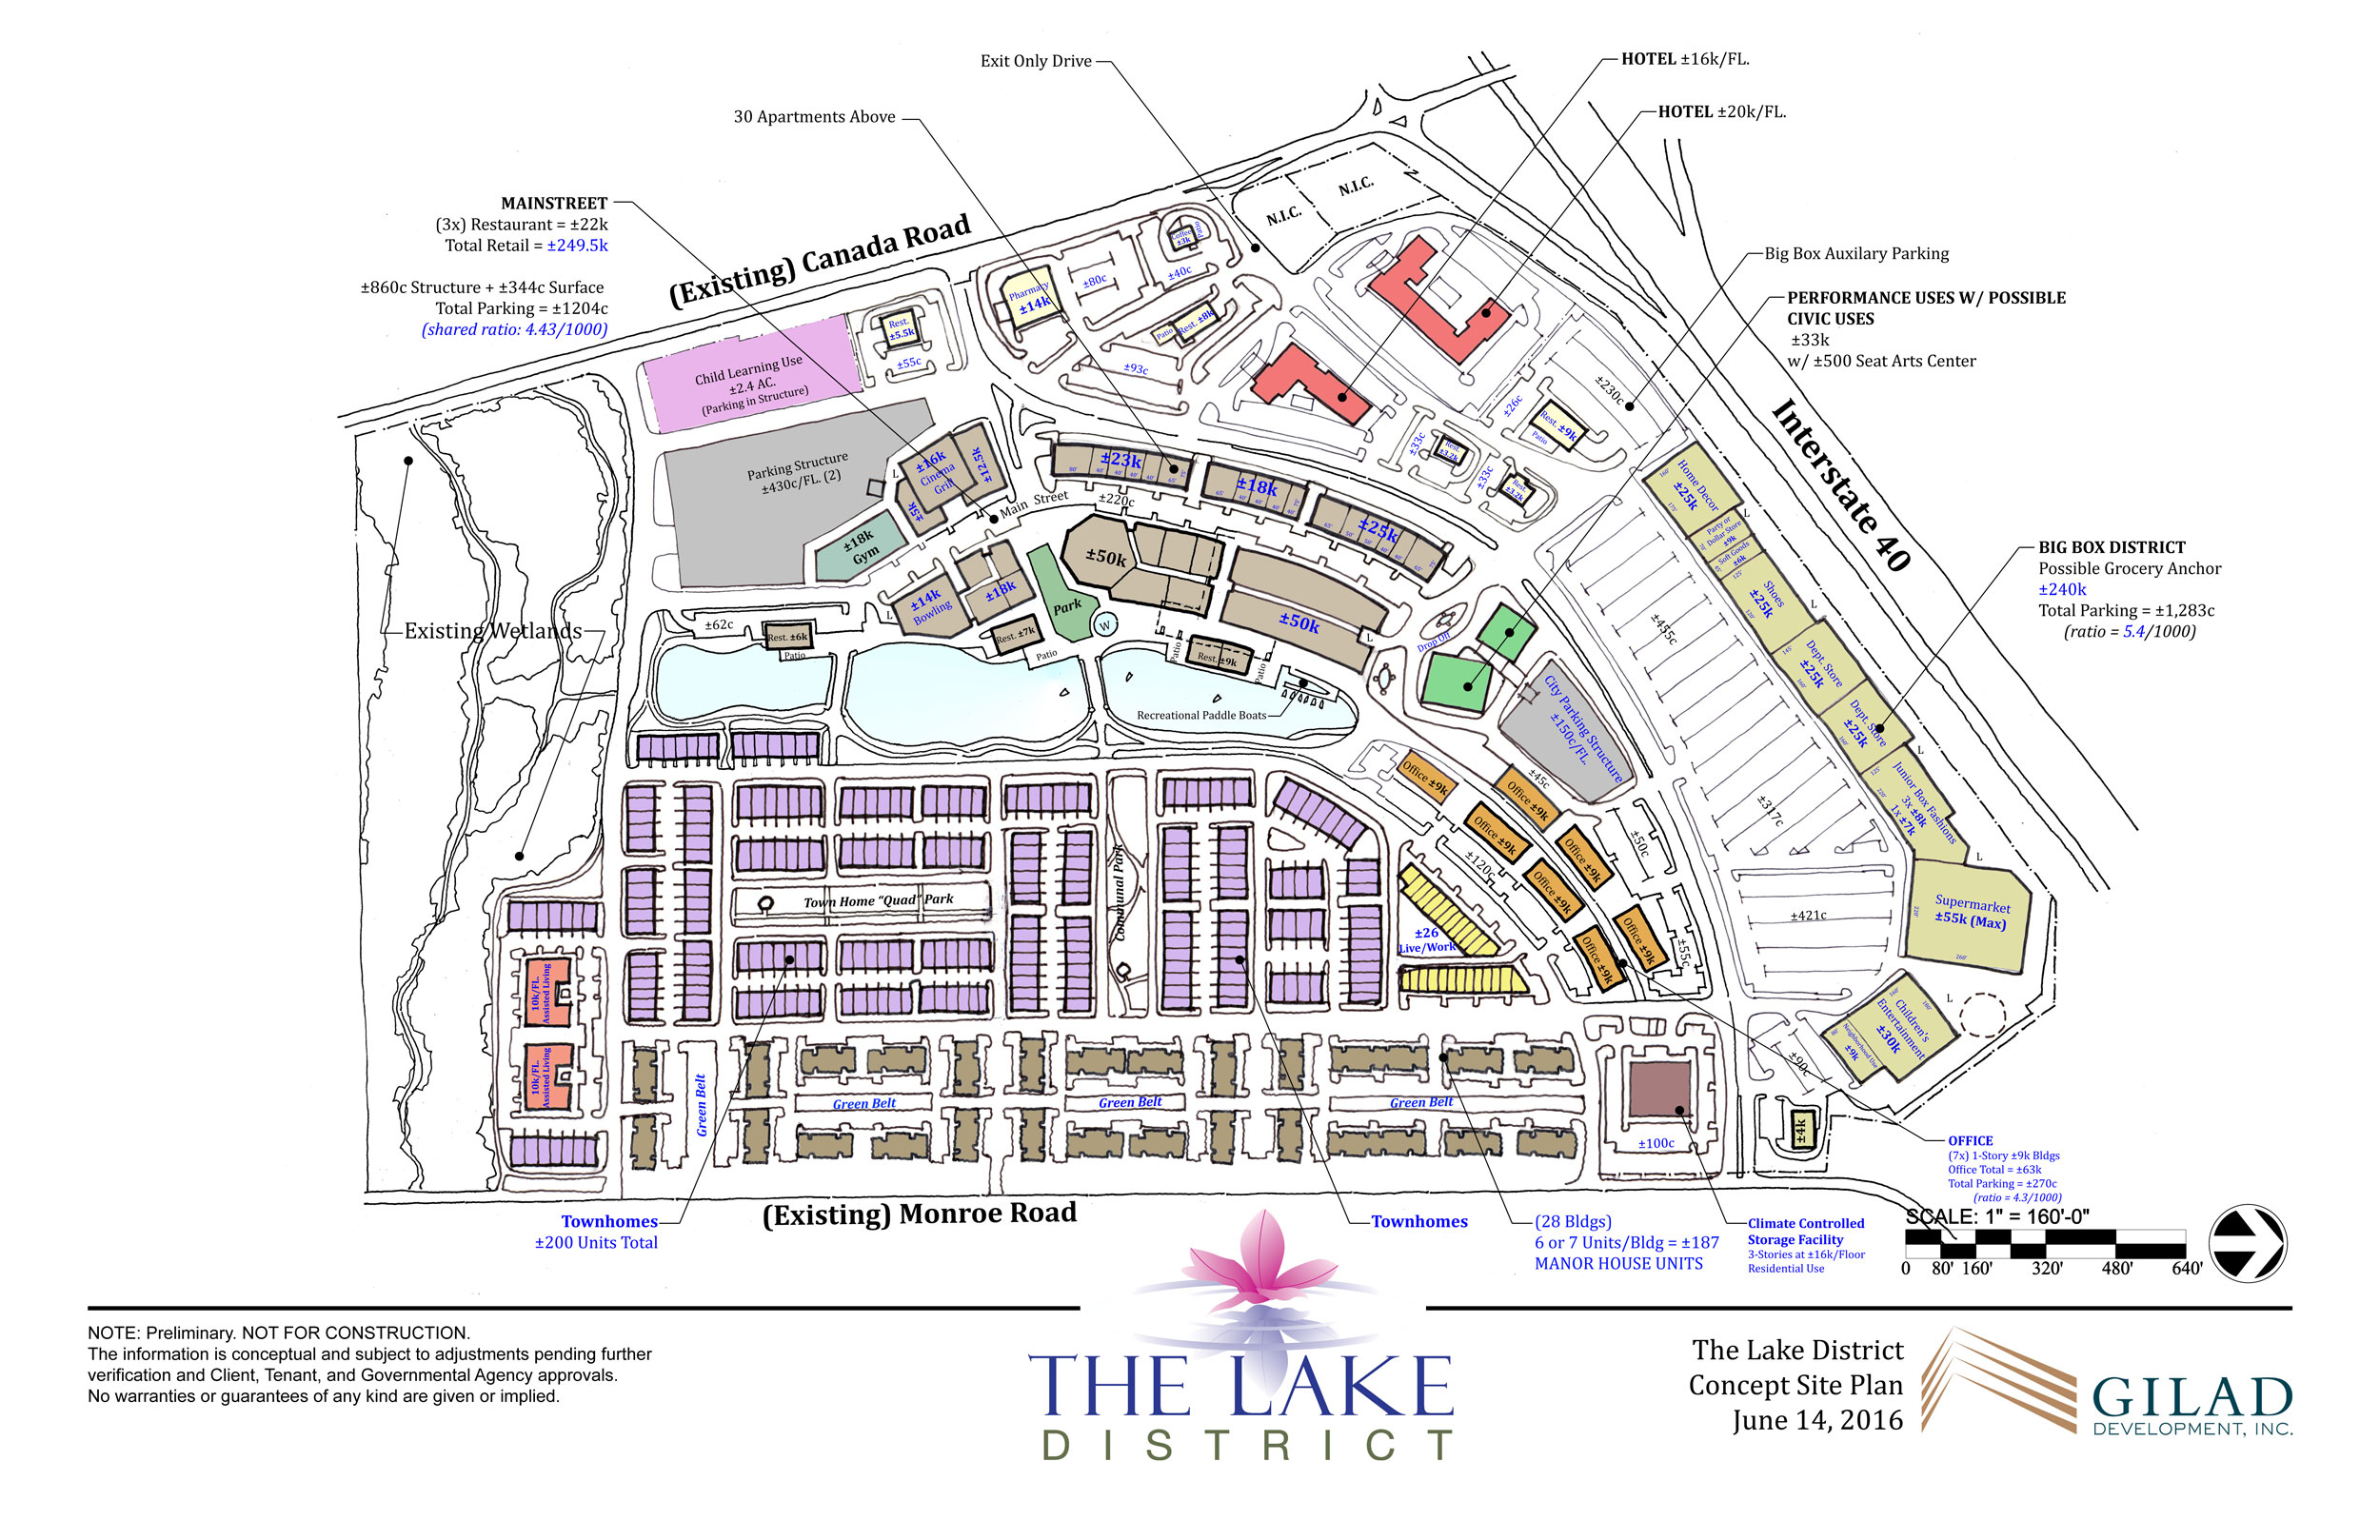 Previous Site Plan Map 2